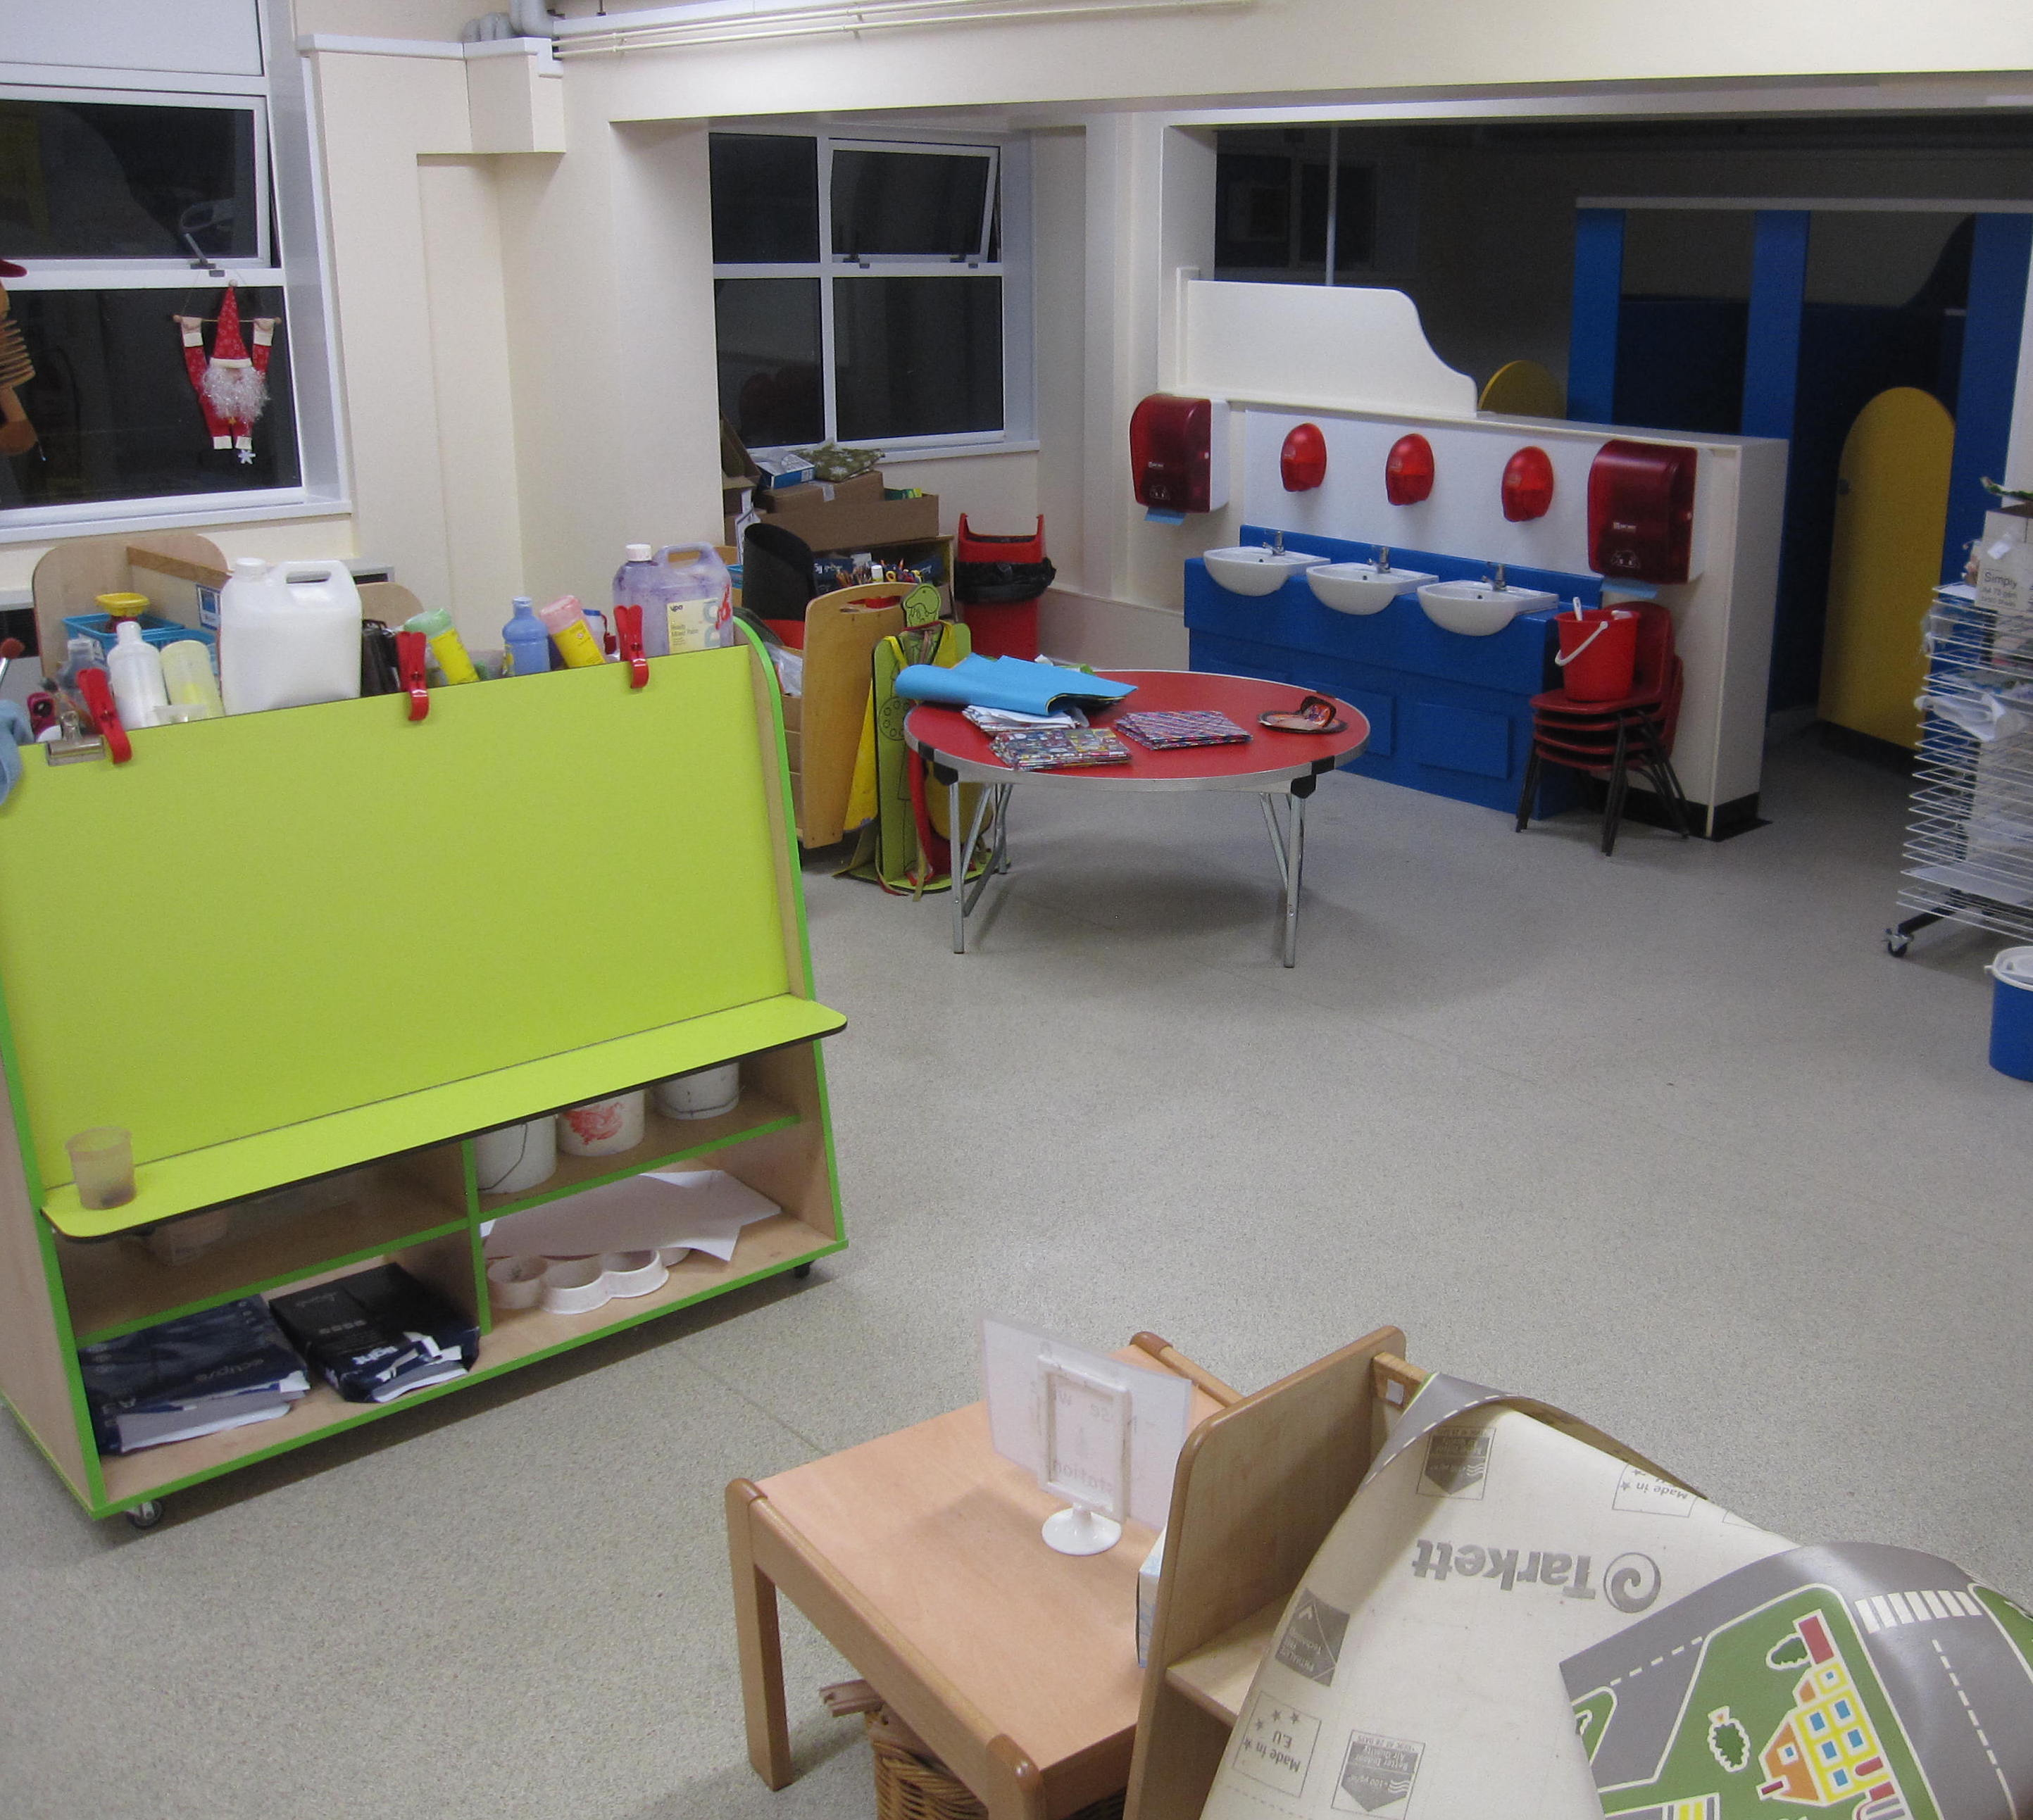 After: the classroom is once again fit for purpose